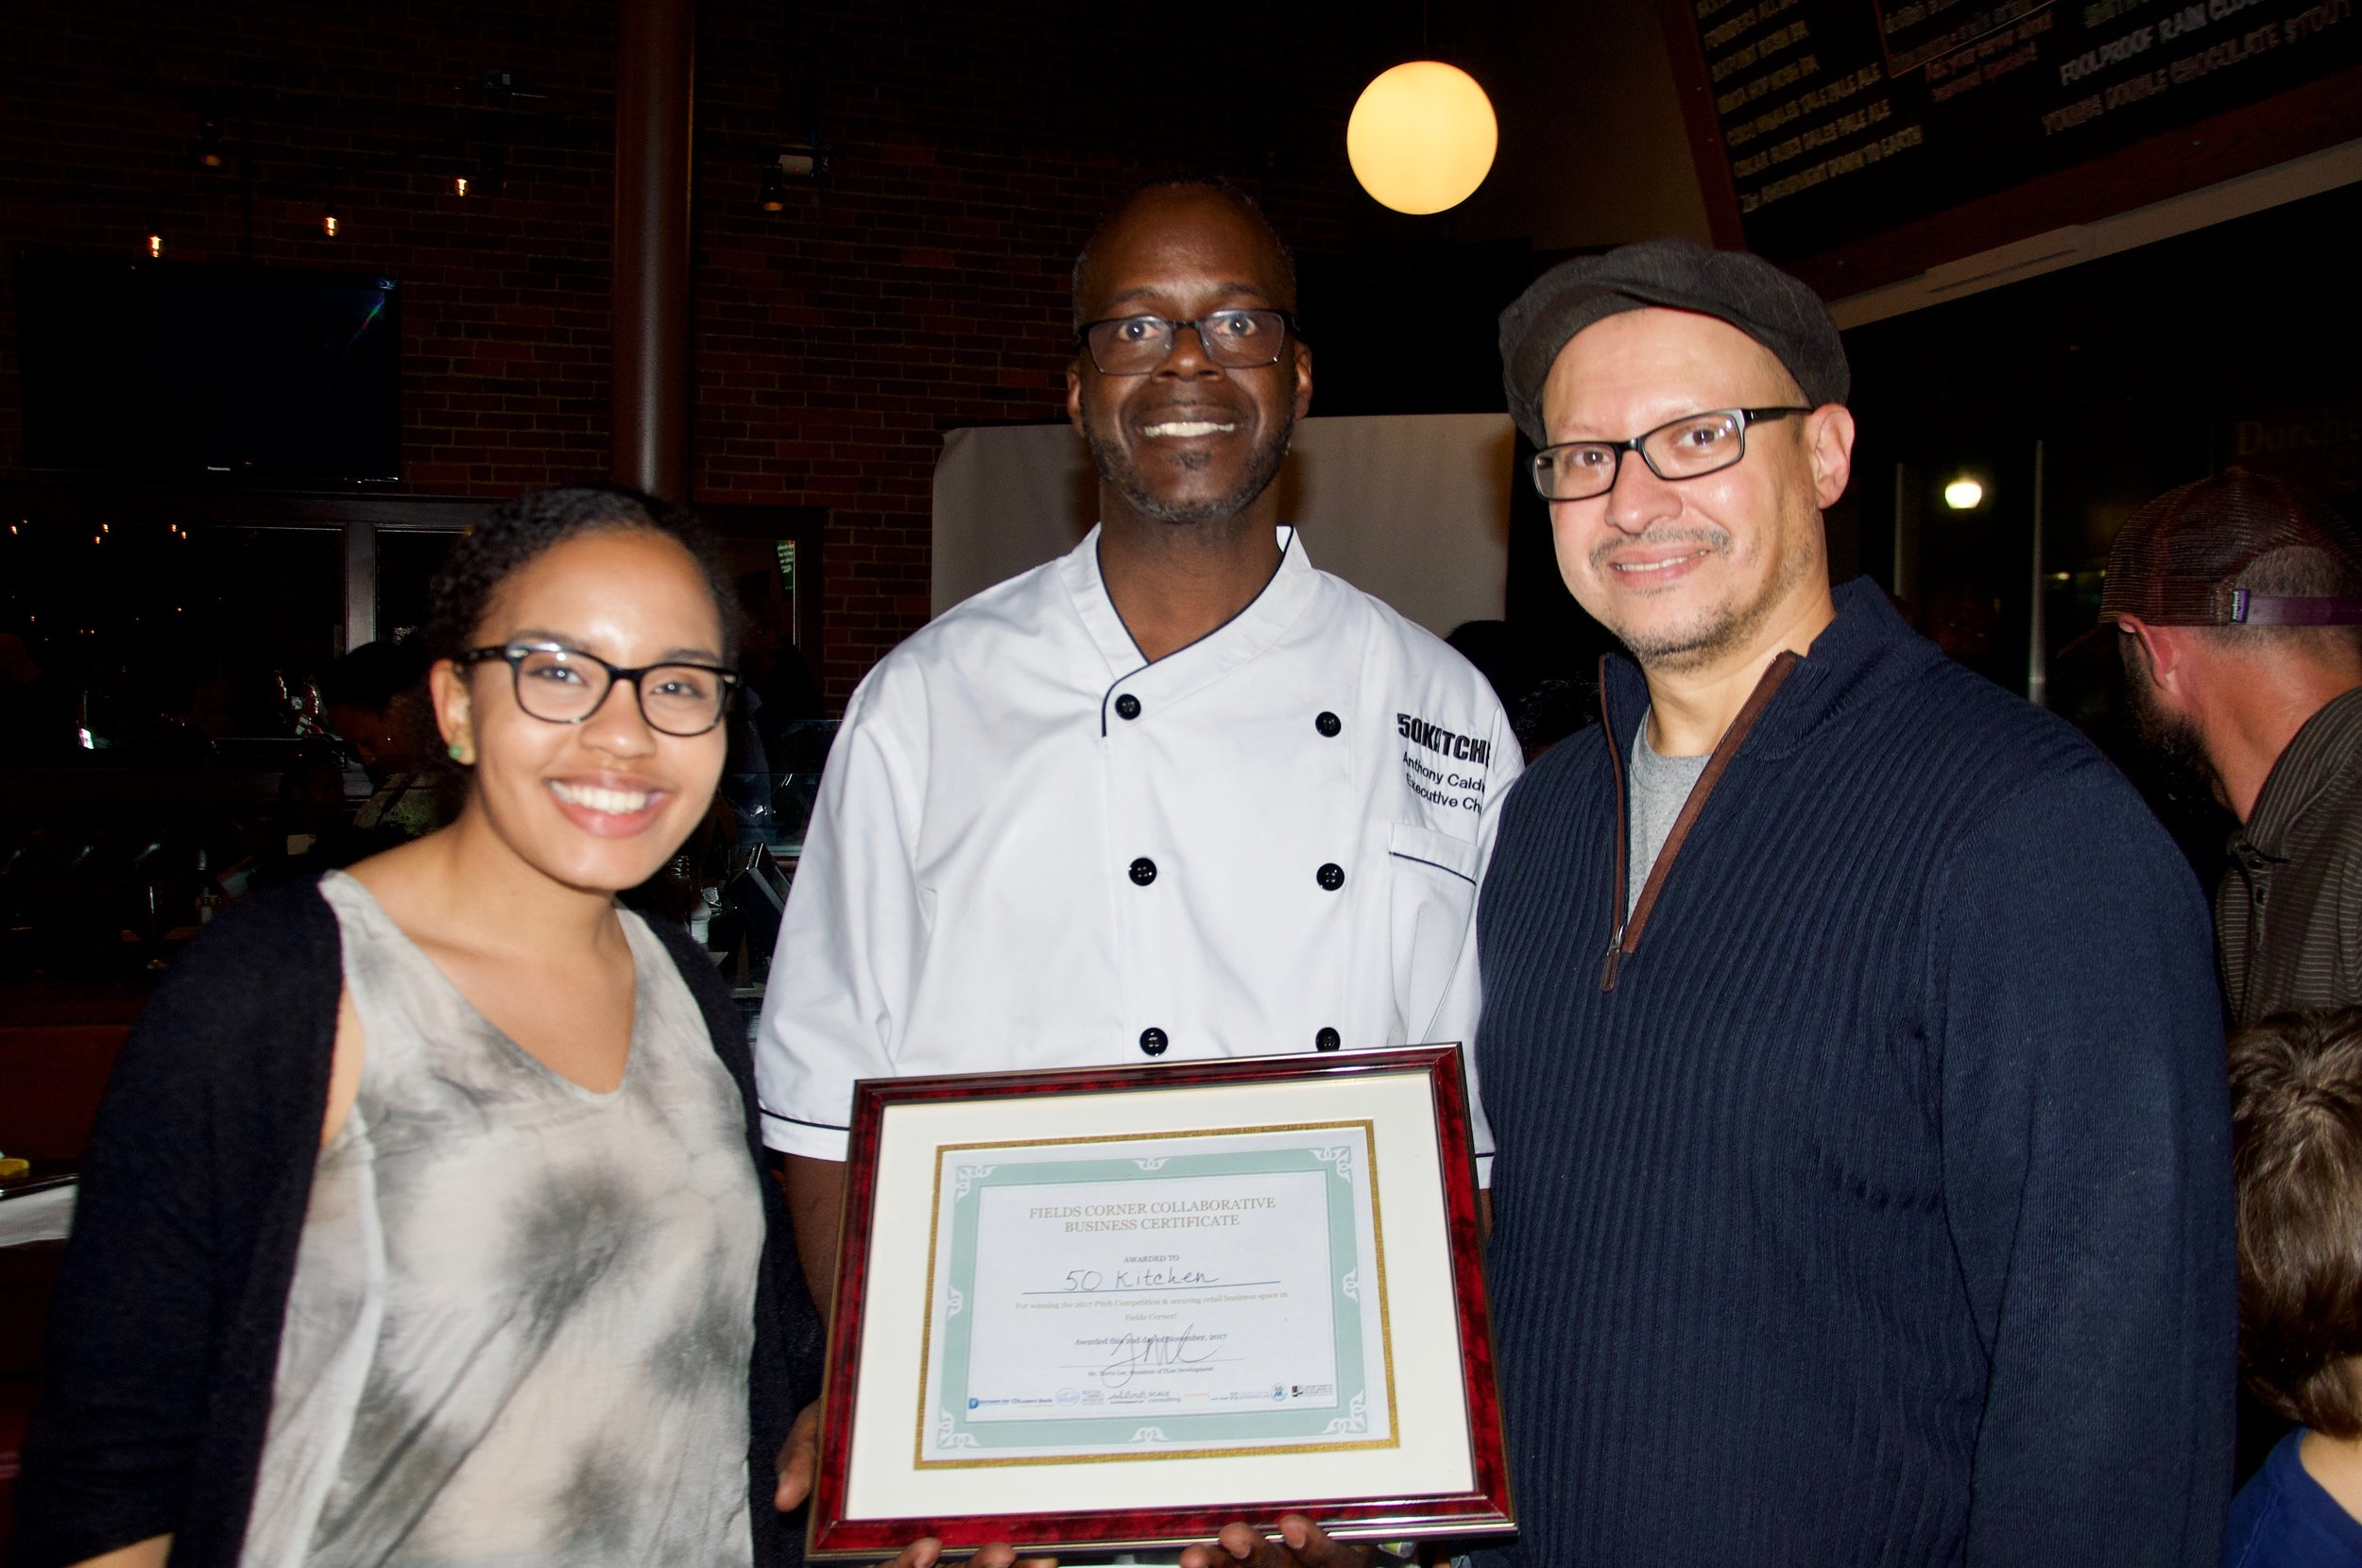 Anthony Caldwell (middle) celebrates with Strategy & Development Director Amine Benali and QVS Fellow Shaina Robinson (Photo by Ben Selden)